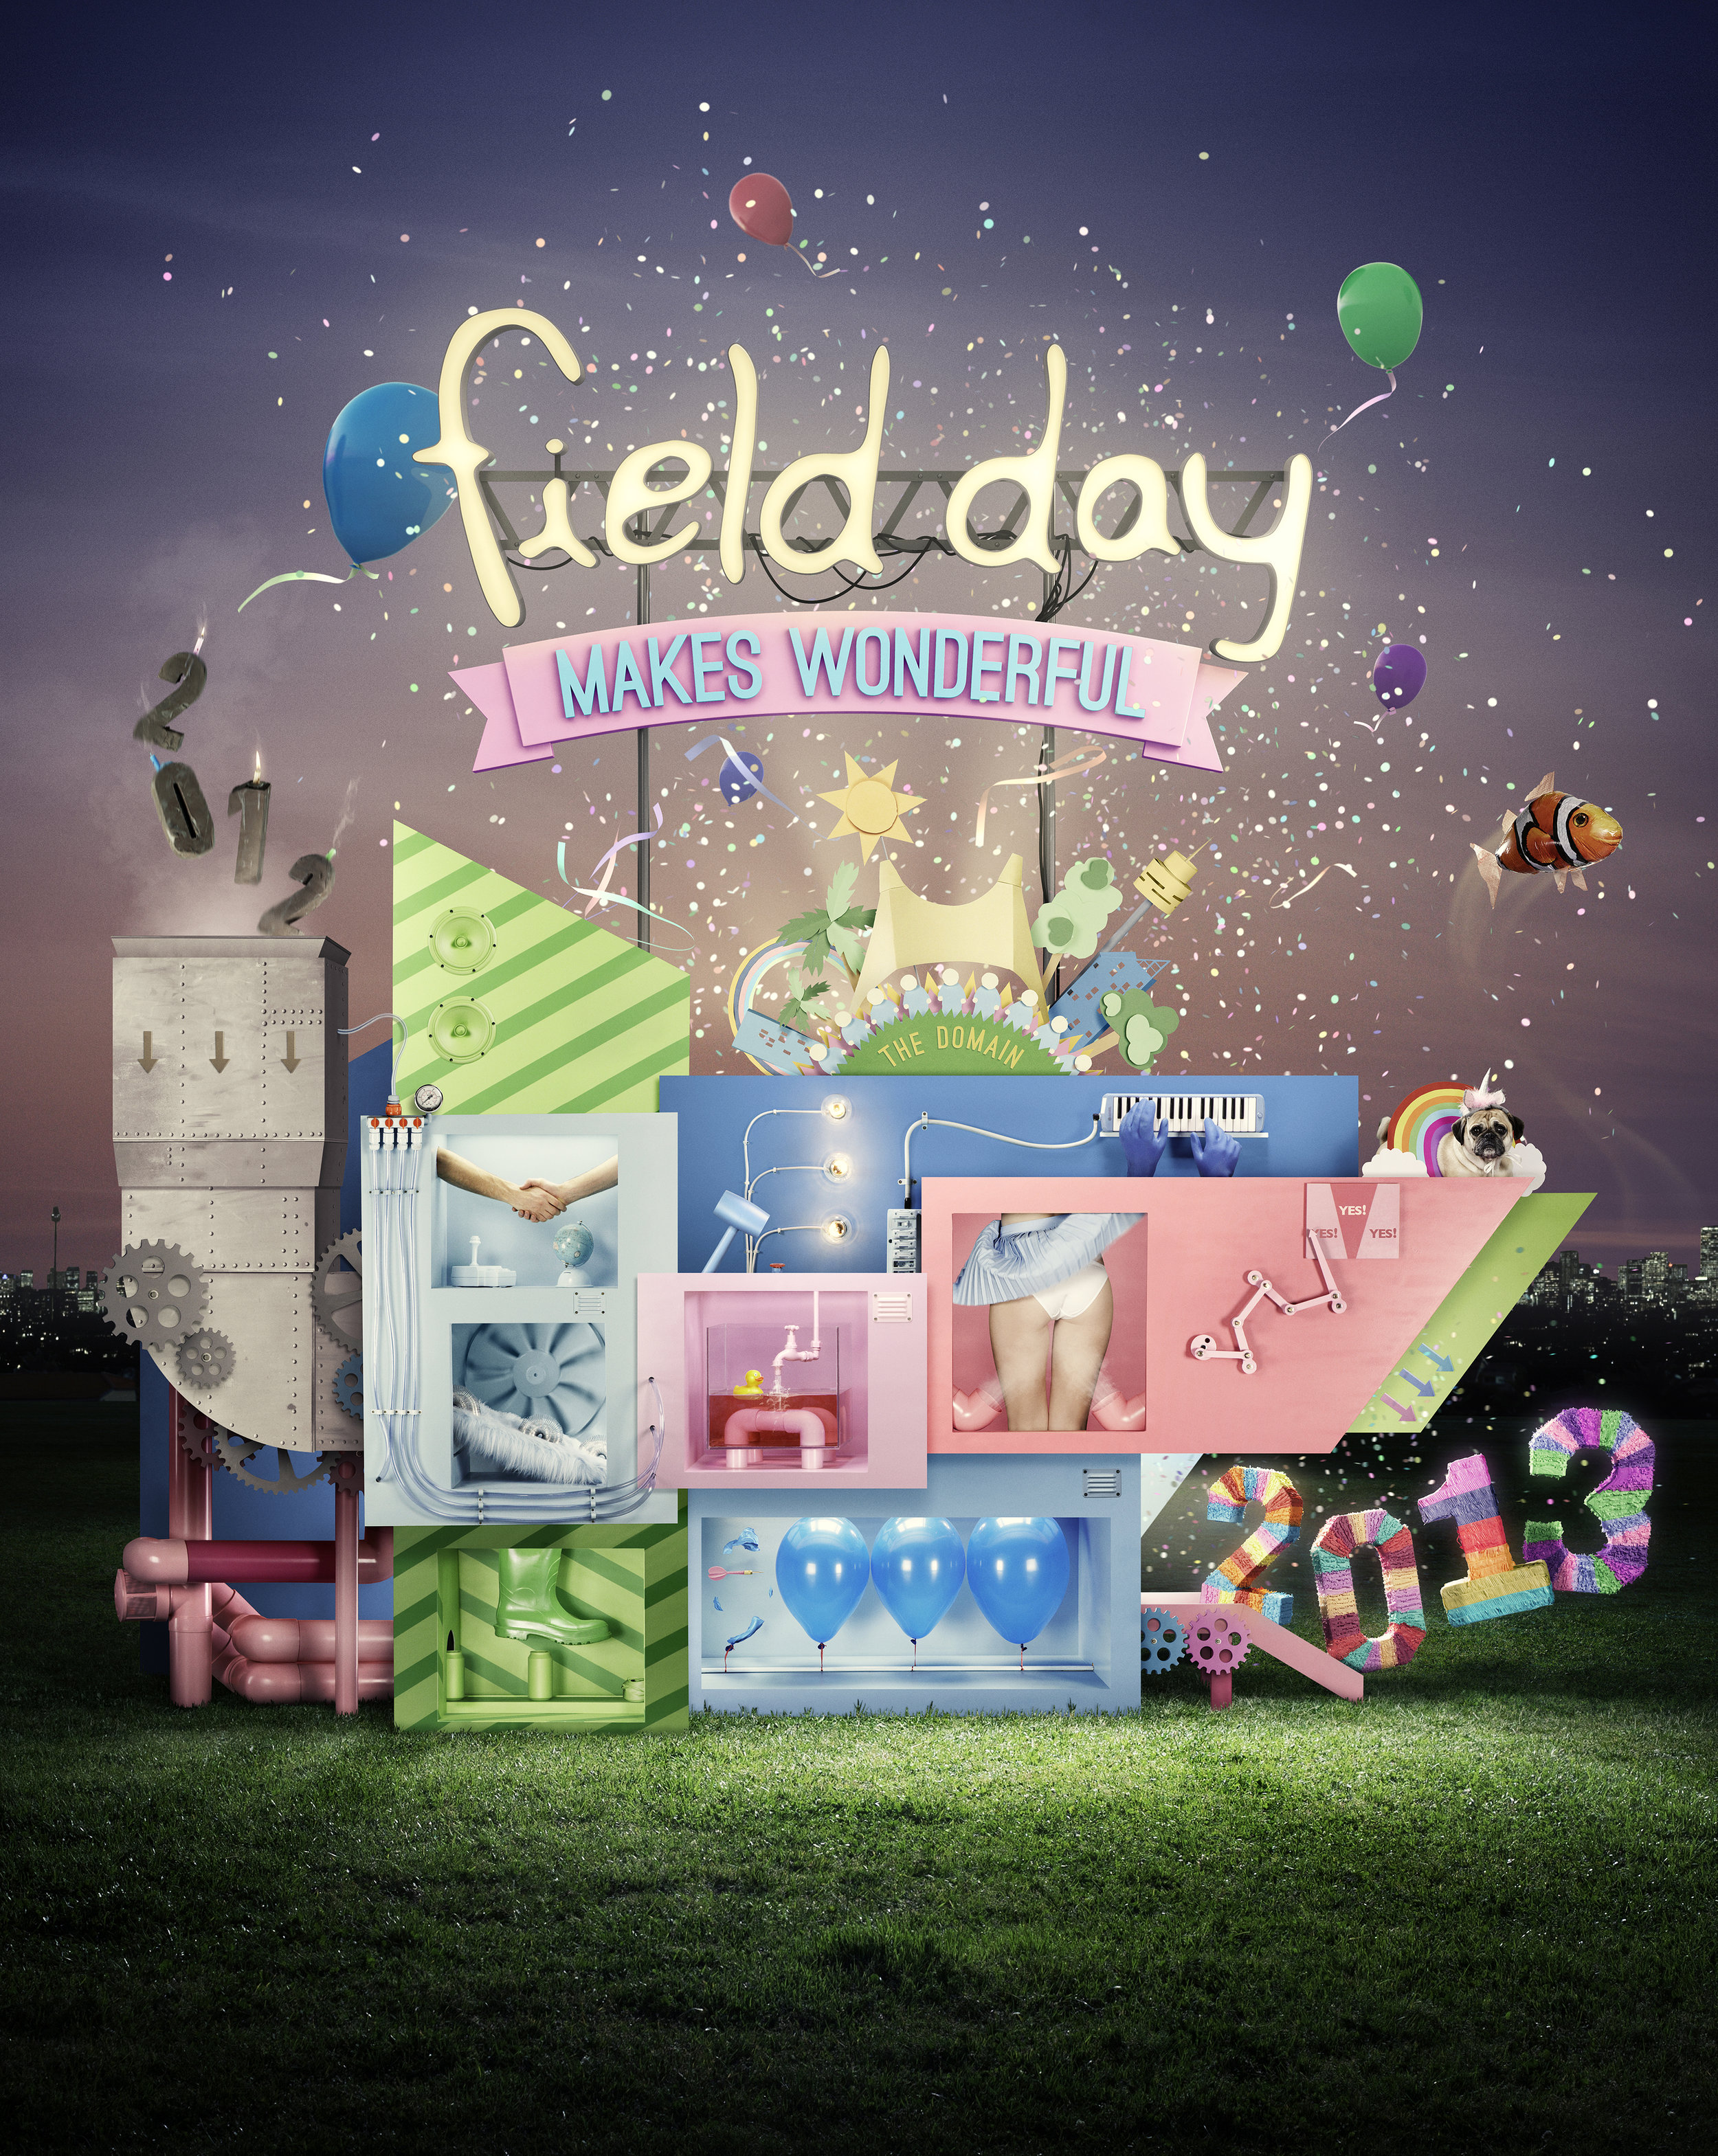 Field Day Poster_012 RGB FINAL.jpg